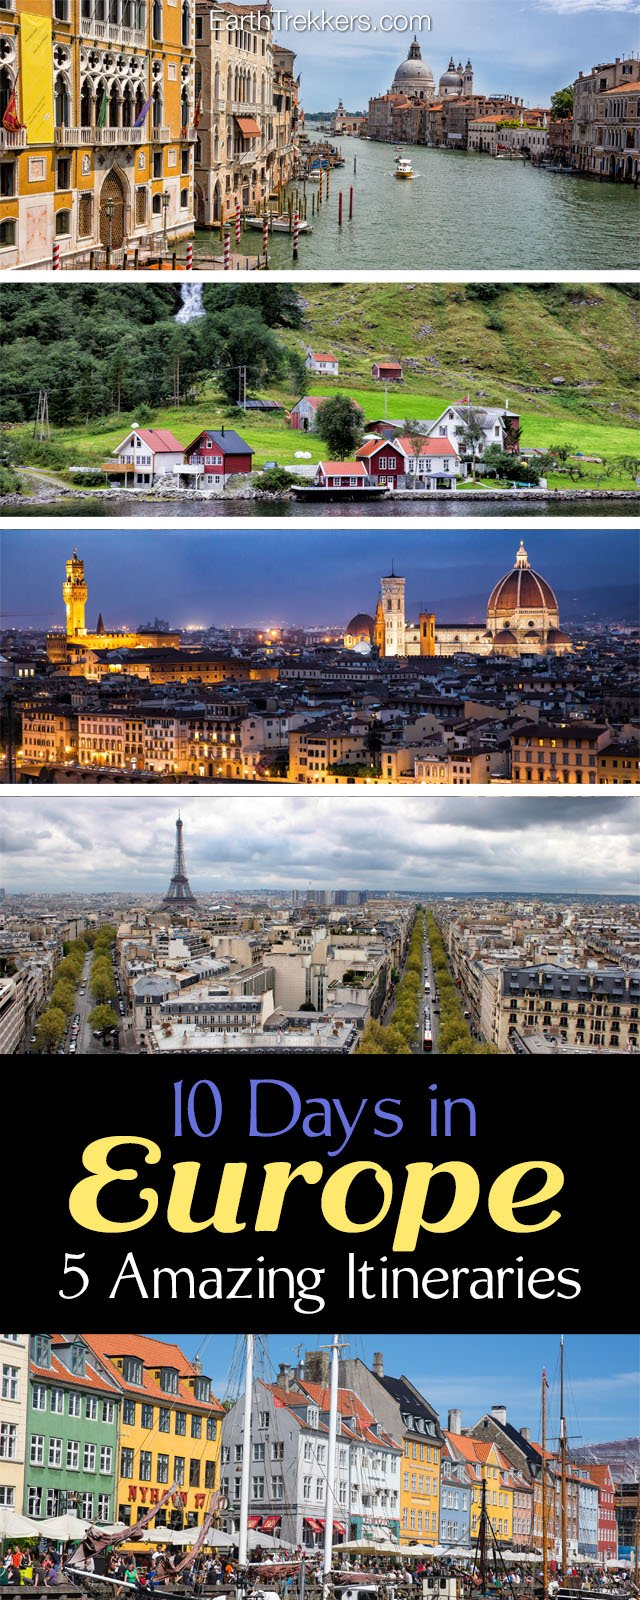 Days In Europe Amazing Itineraries Earth Trekkers - 10 european attractions every kid should experience